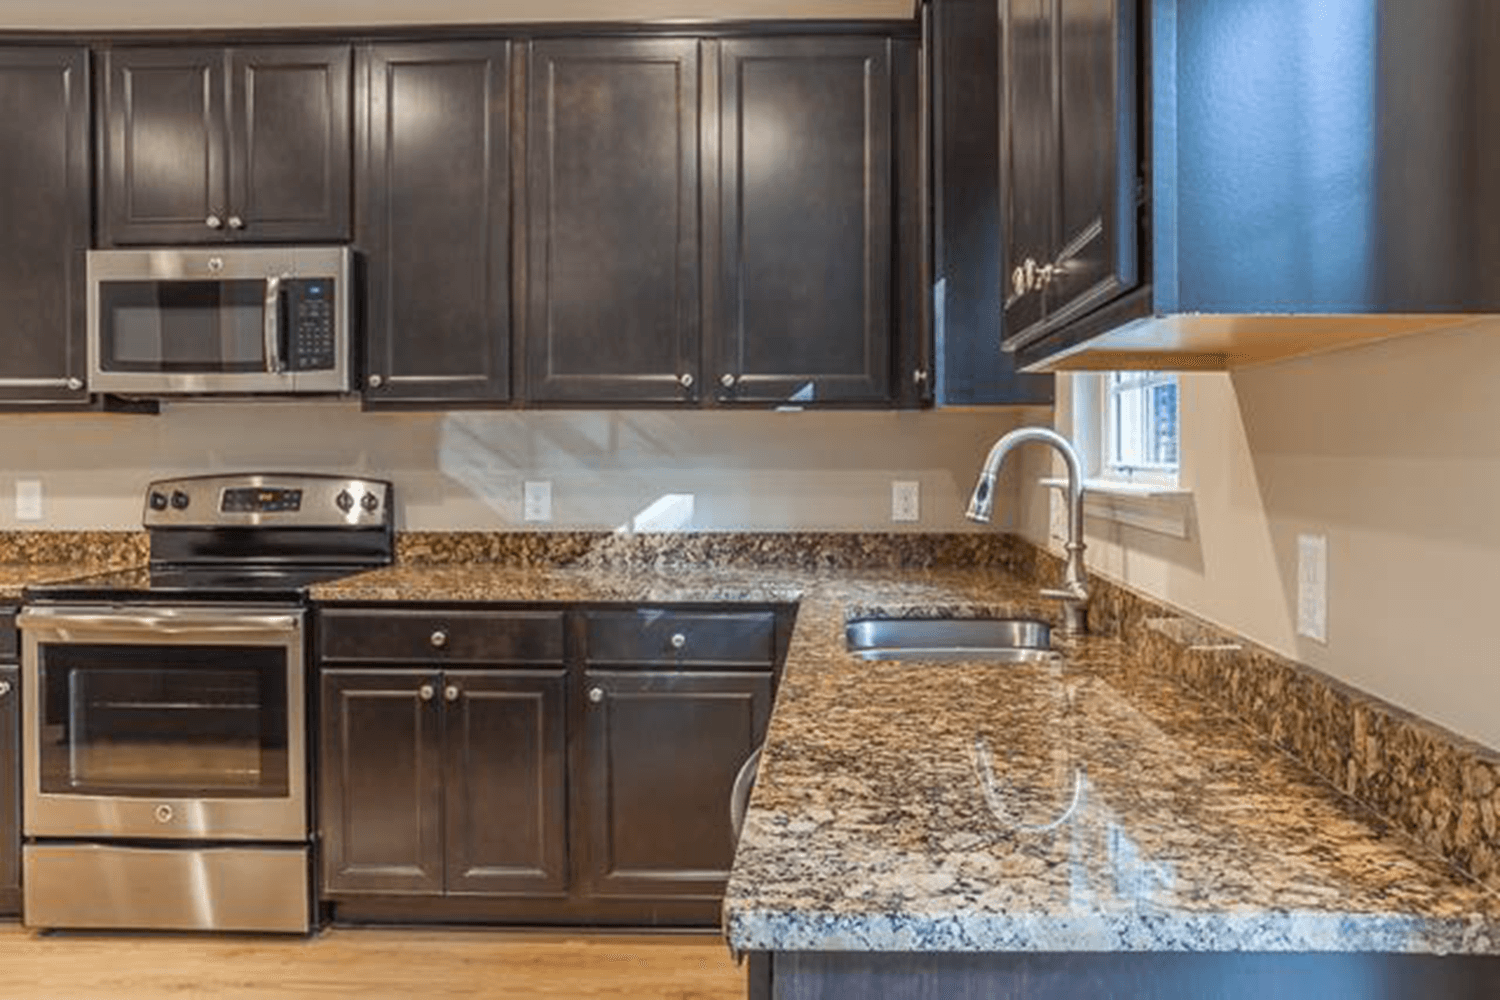 Kitchen featured in The Atlanta (Build on your lot) By Lamar Smith Homes in Savannah, GA